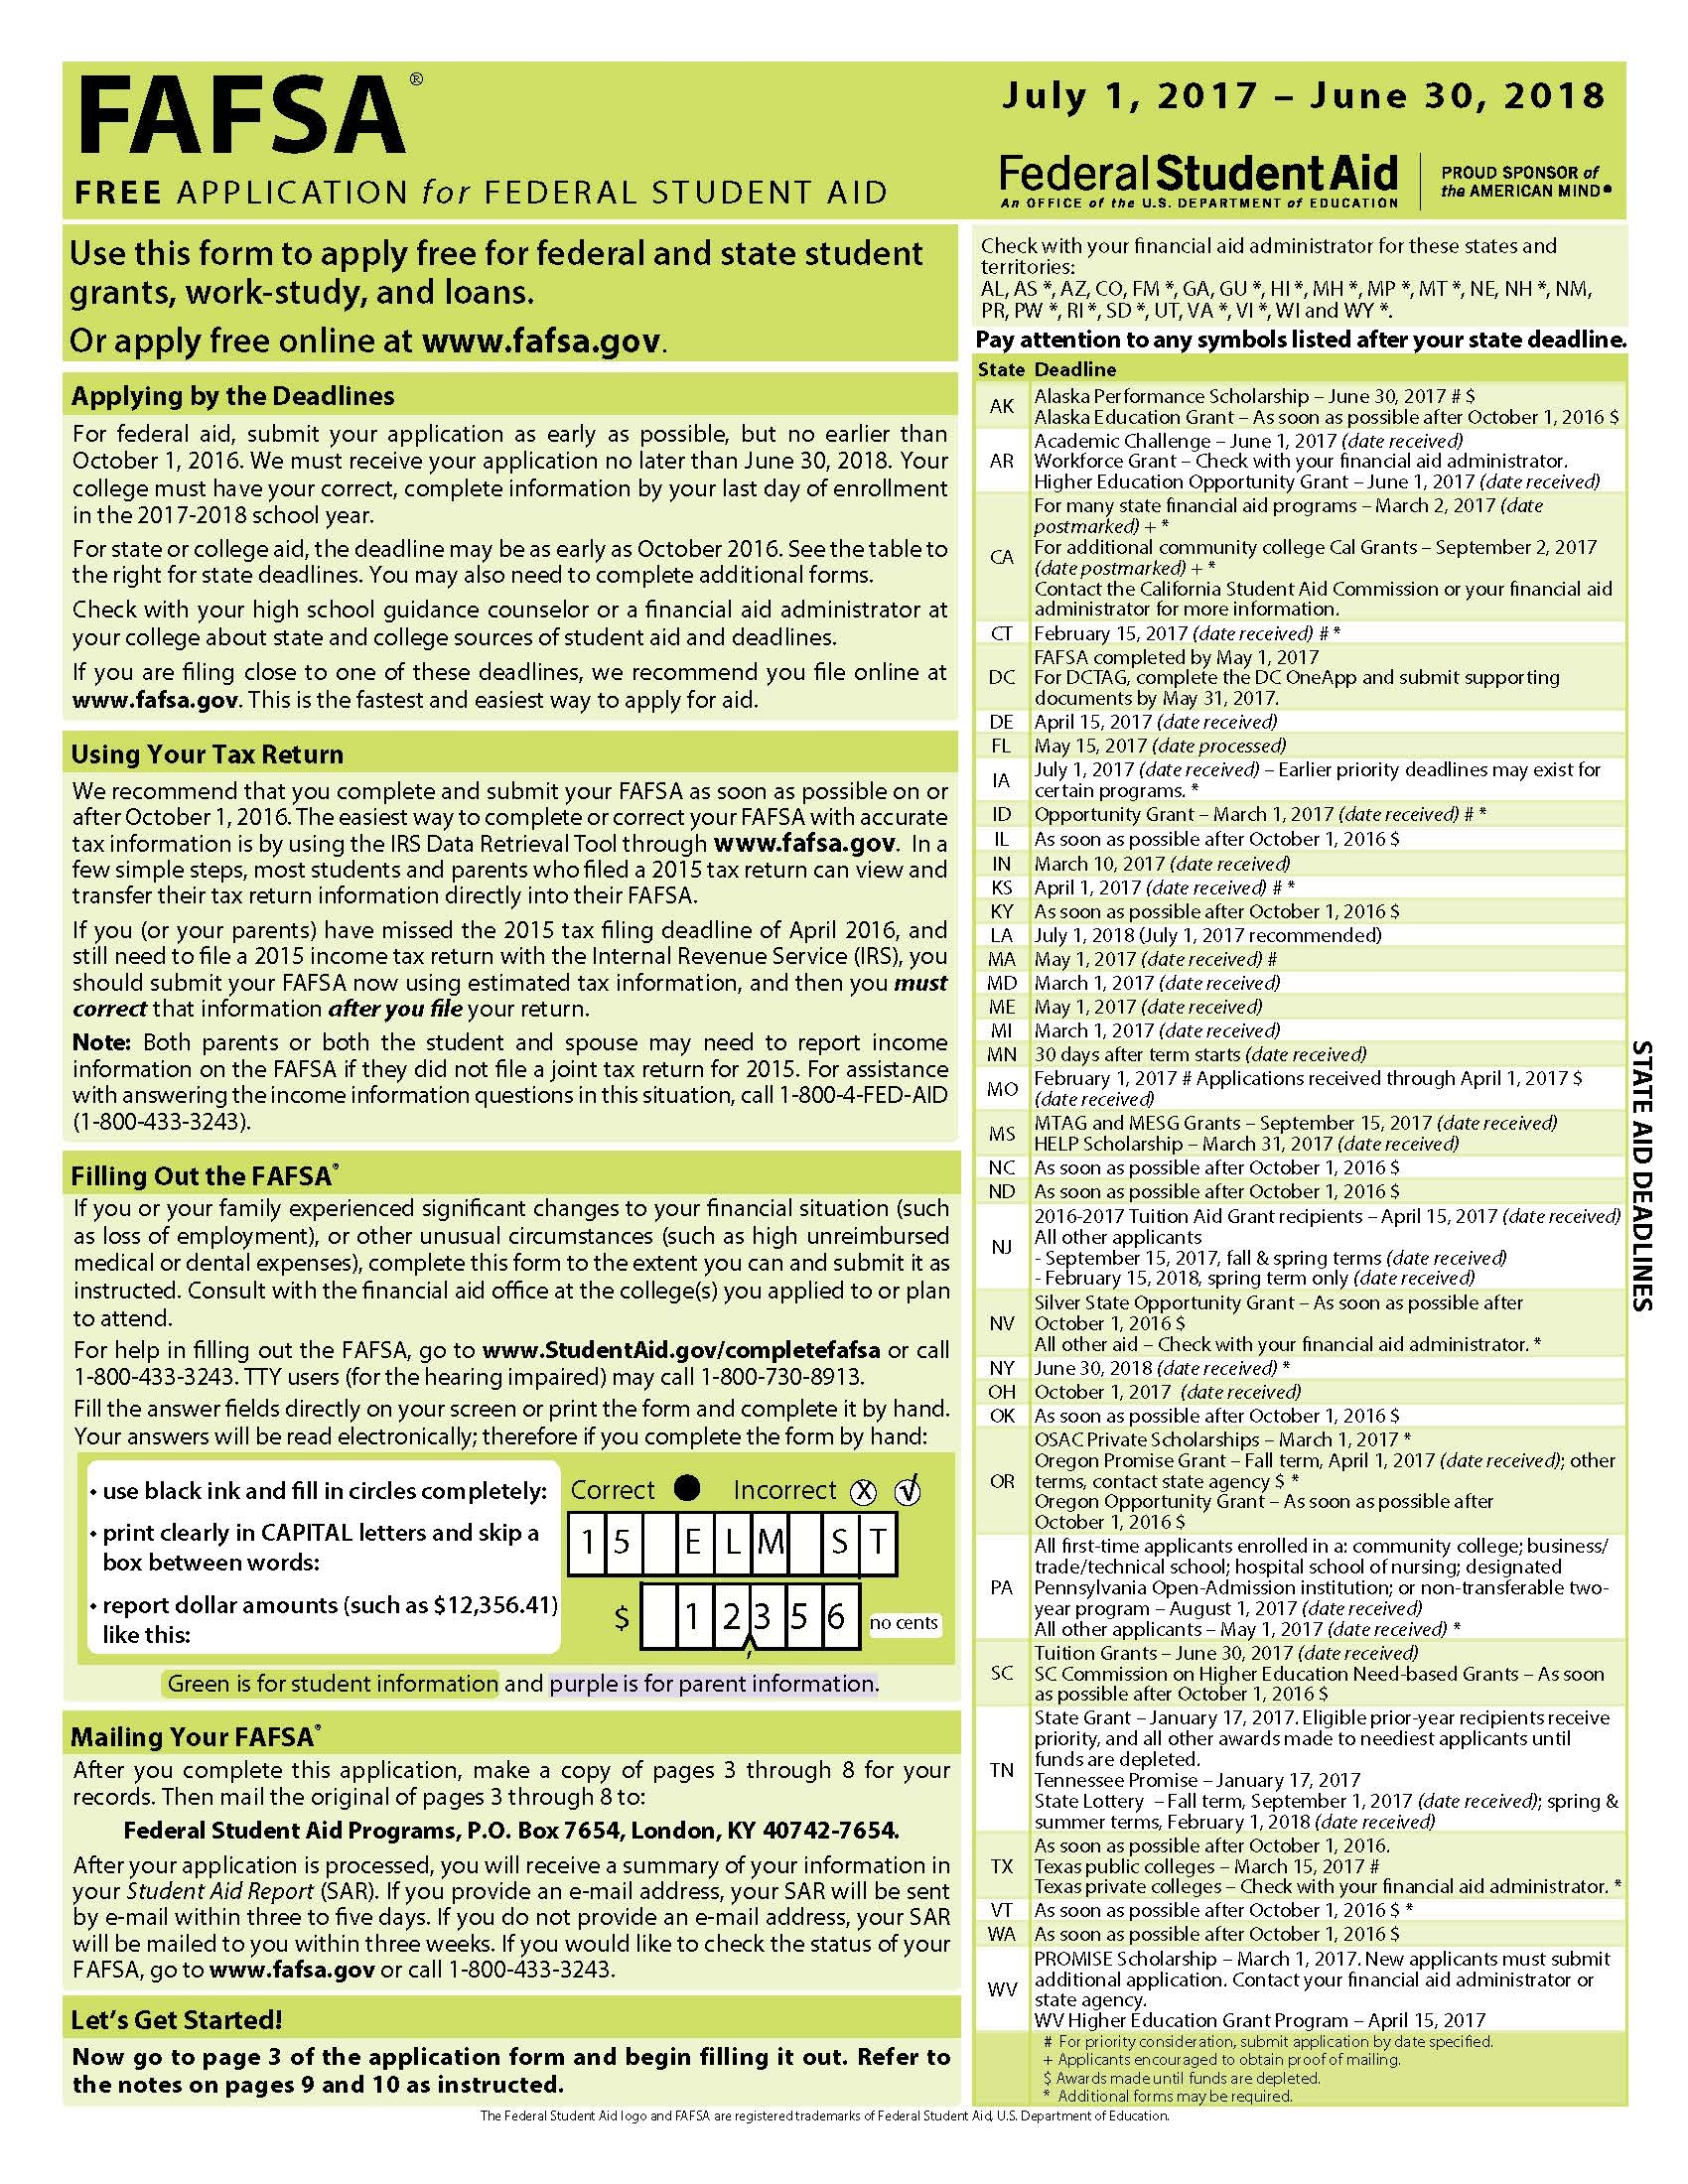 Fafsa Form Archive: Recent Changes   Edvisors - Free Printable Fafsa Application Form